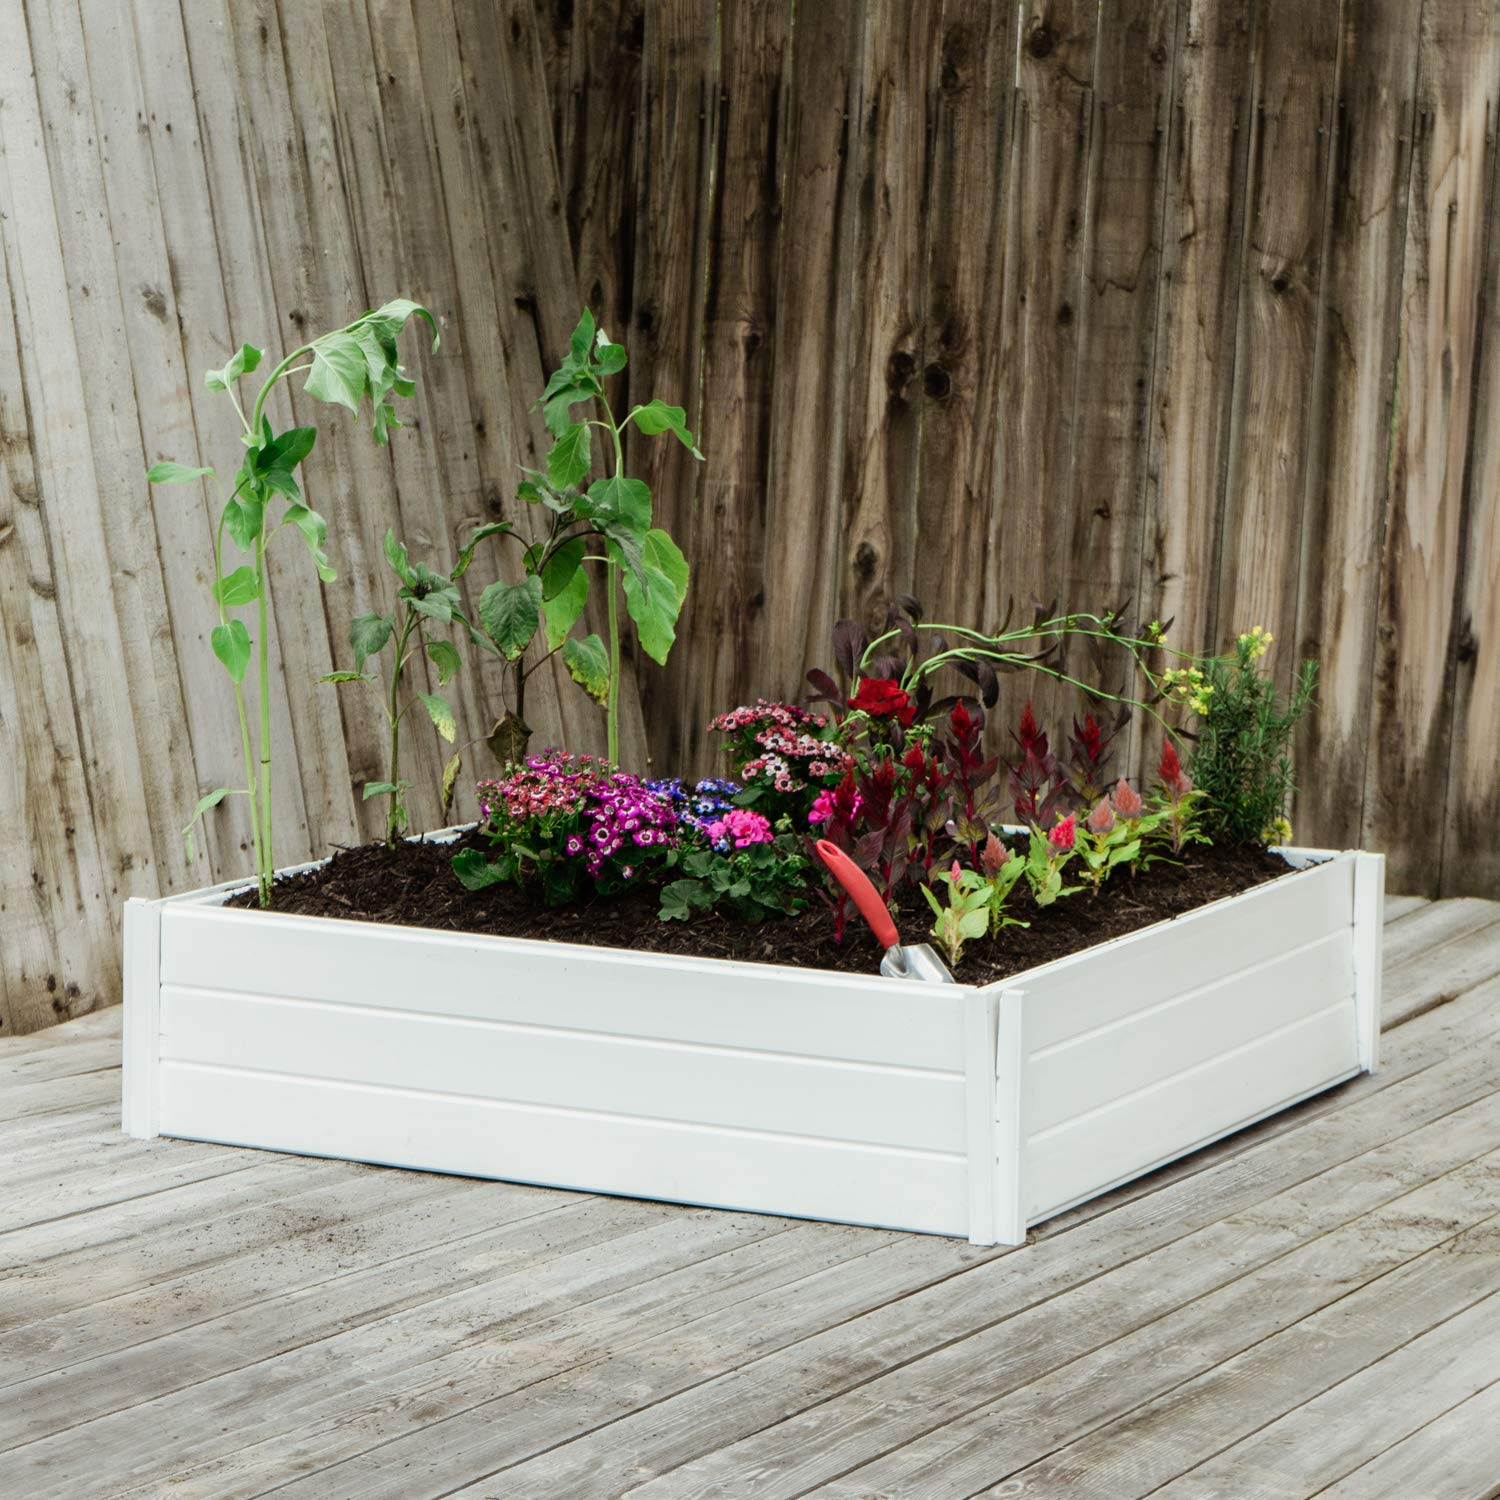 White Planter Box, Elevated Home Gardening, Raised DIY Vinyl Vegetable on edible garden ideas and designs, raised bed planters using tires, raised brick flower bed designs, round raised garden beds designs, raised garden planters outdoor, raised bed furniture designs, raised backyard vegetable garden ideas, raised bed trellis designs, raised bed gardening designs, vegetable garden box designs, beautiful landscape flower beds and designs,